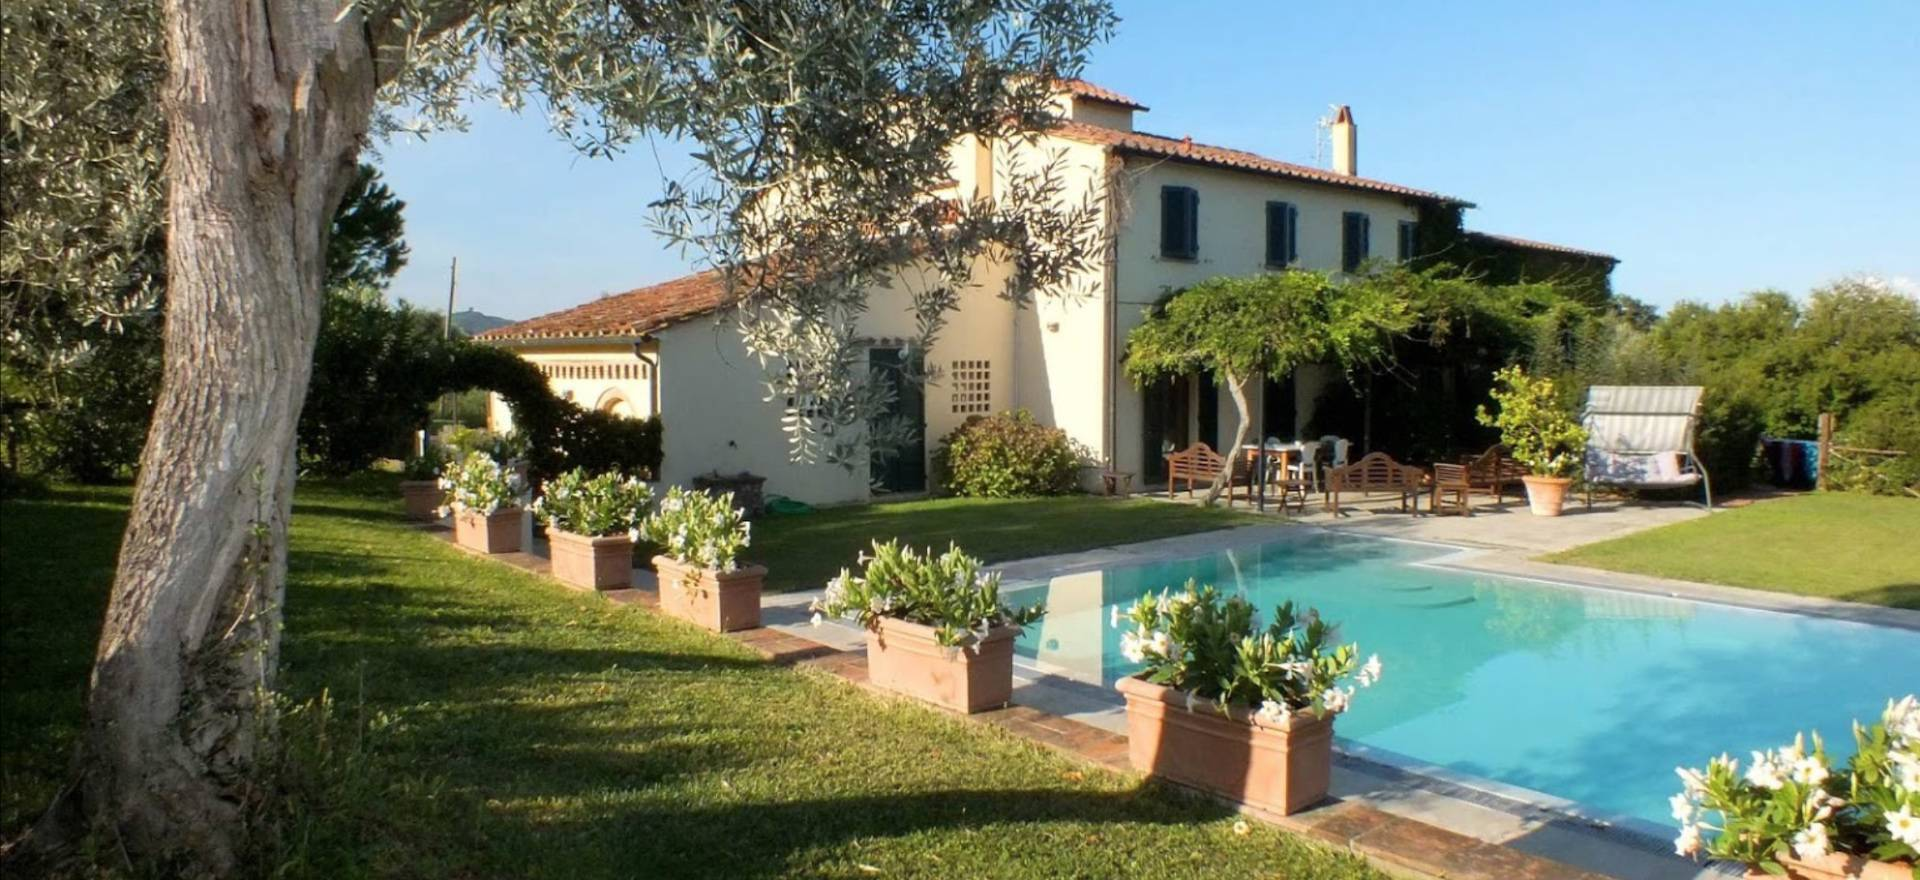 Agriturismo Tuscany Agriturismo in the hart of the Super-Tuscan wine region